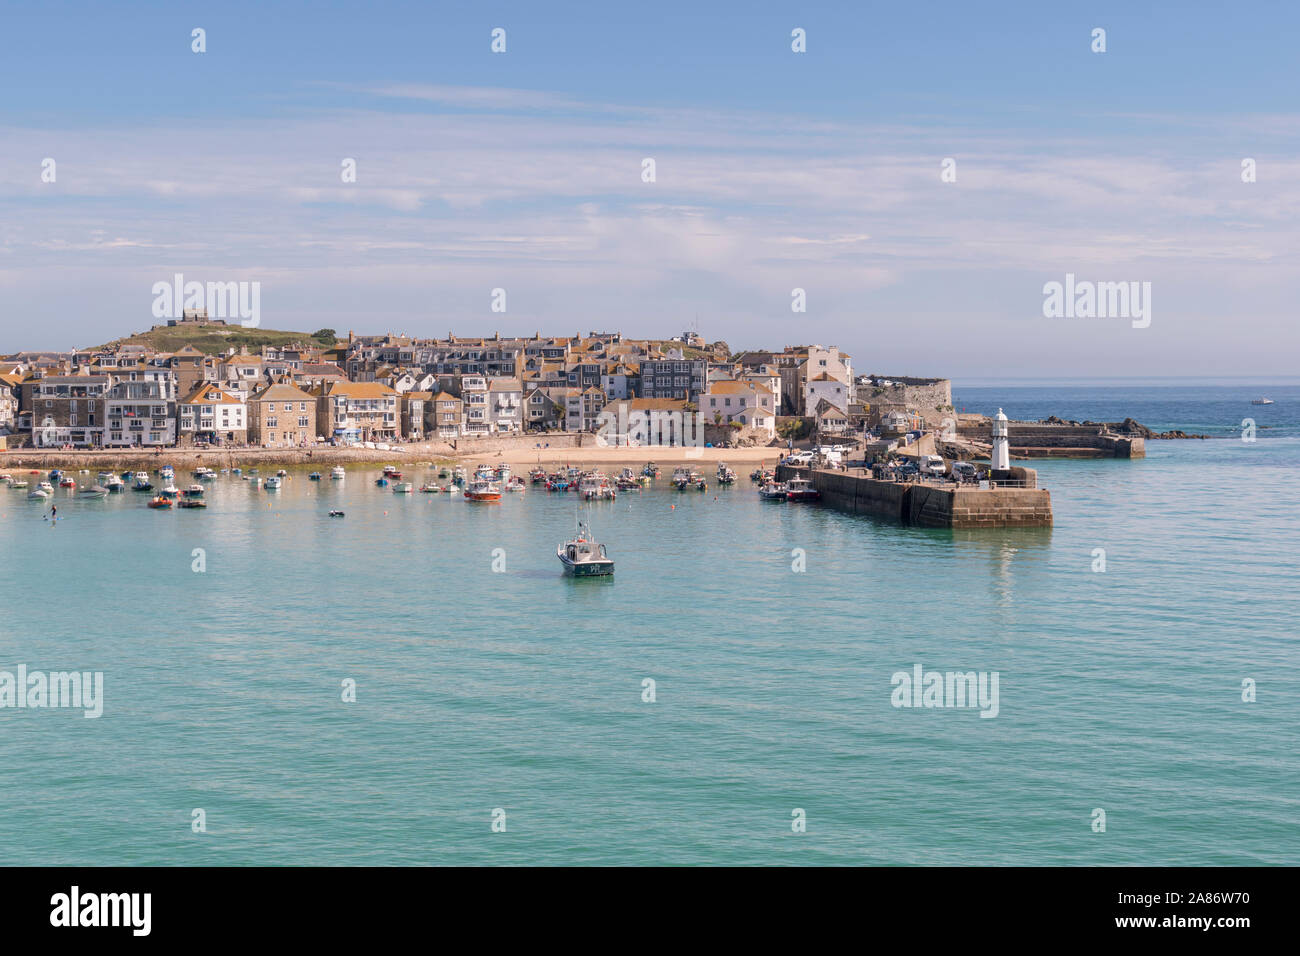 Summer in the popular seaside resort of St Ives, Cornwall. Stock Photo